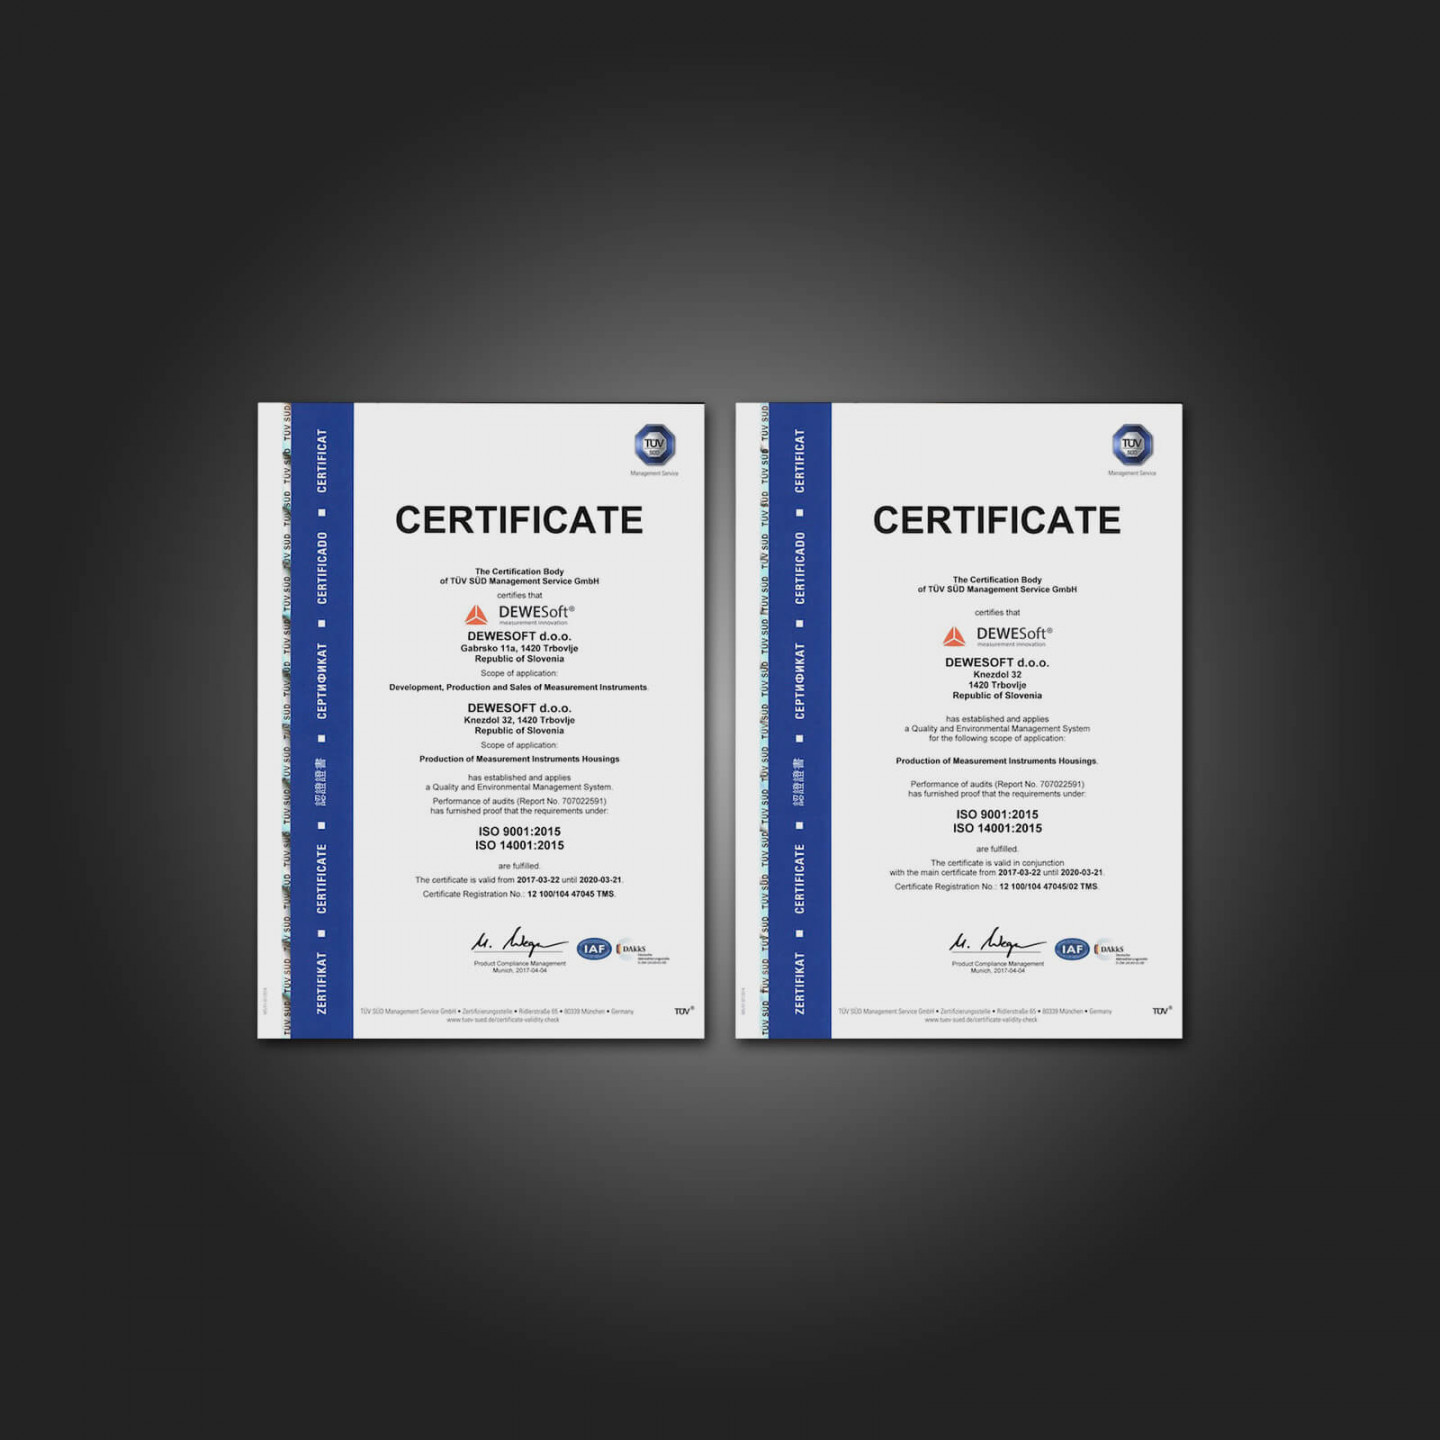 Dewesoft ISO 9001 and 14001